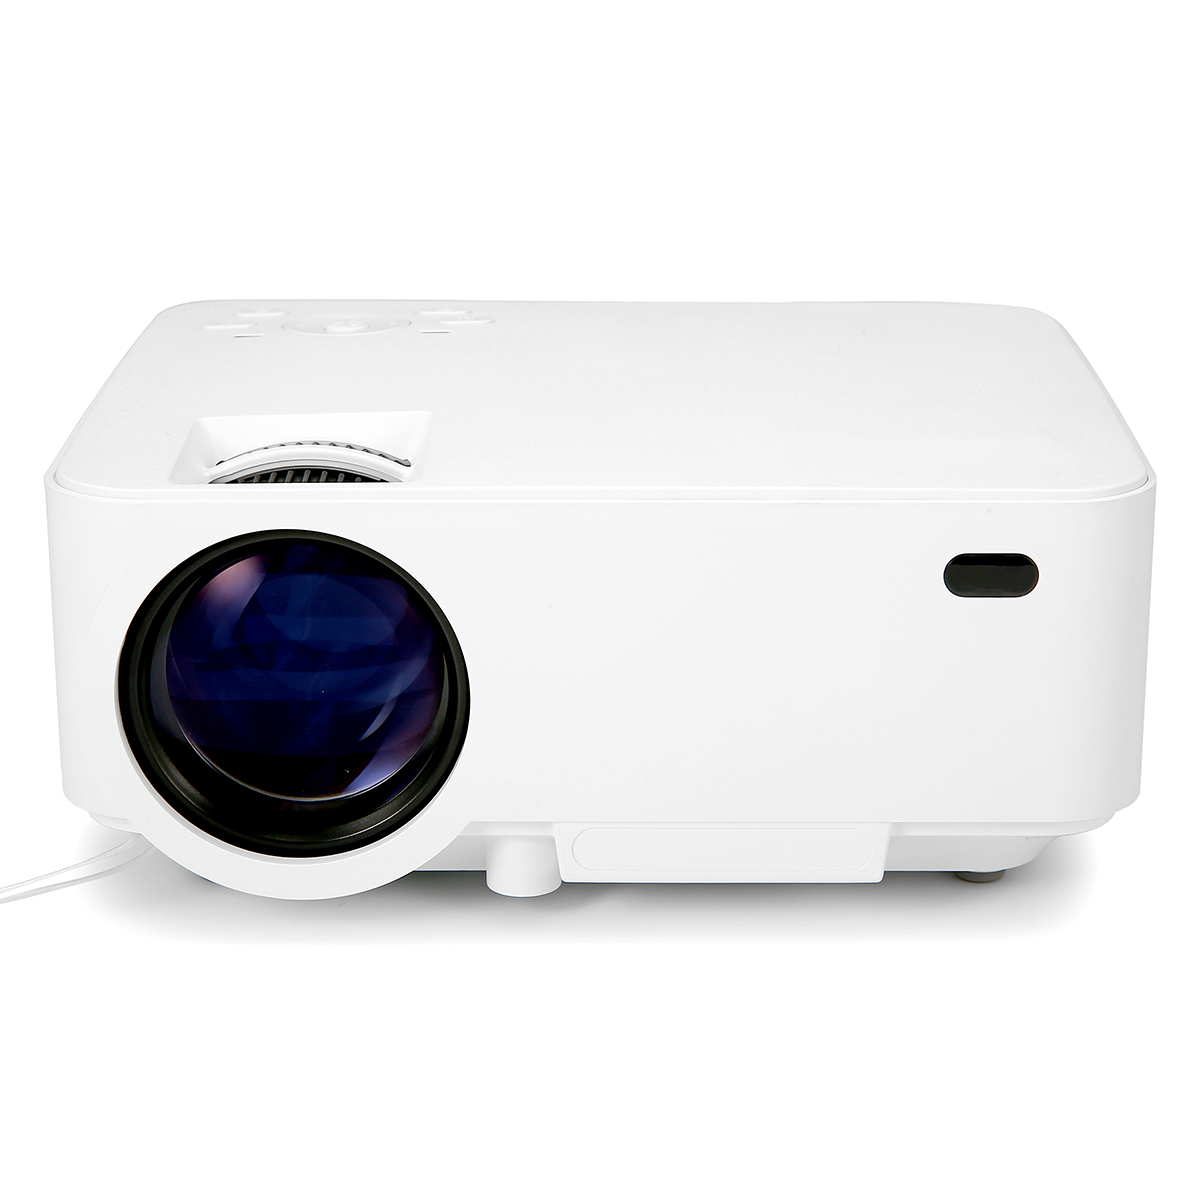 Mini 4 Inch Portable Project Home Theater Video Projector Support T20 1080P LCD To Watch Sports Matches or Movie For Family or Party